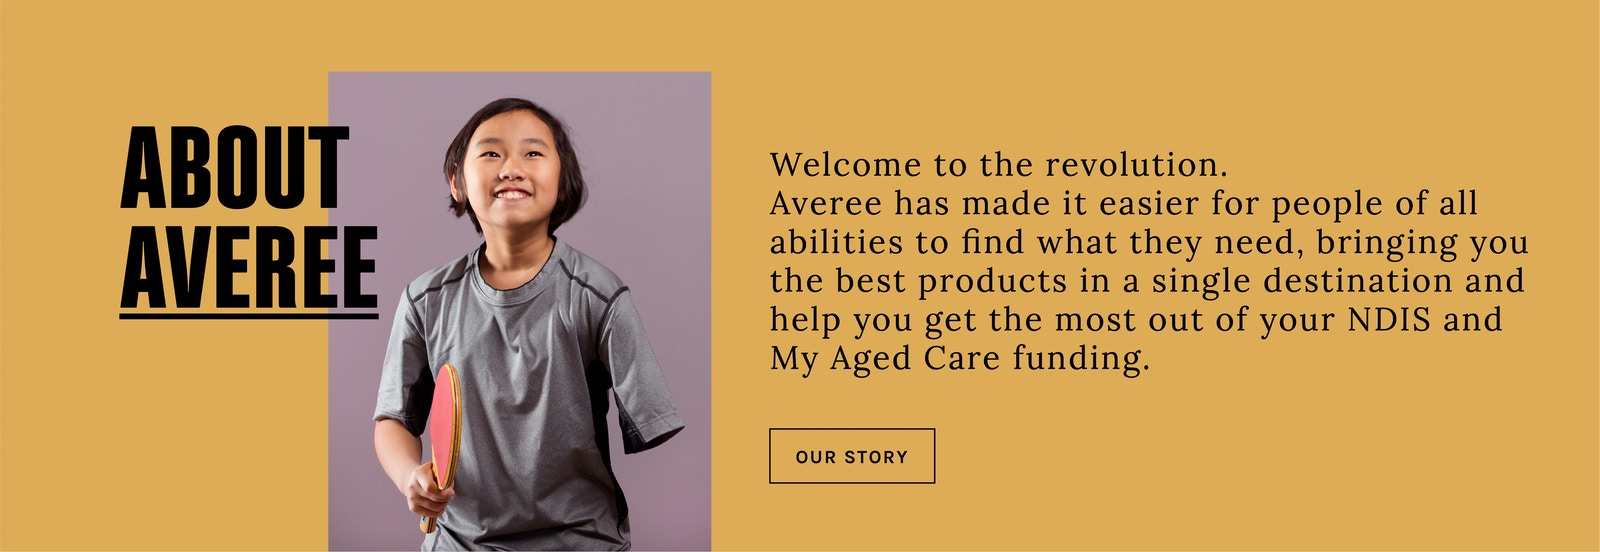 Welcome to the revolution. Averee has made it easier for people of all abilities to find what they need, bringing you the best products in a single destination and help you get the most out of your NDIS and My Aged Care funding.